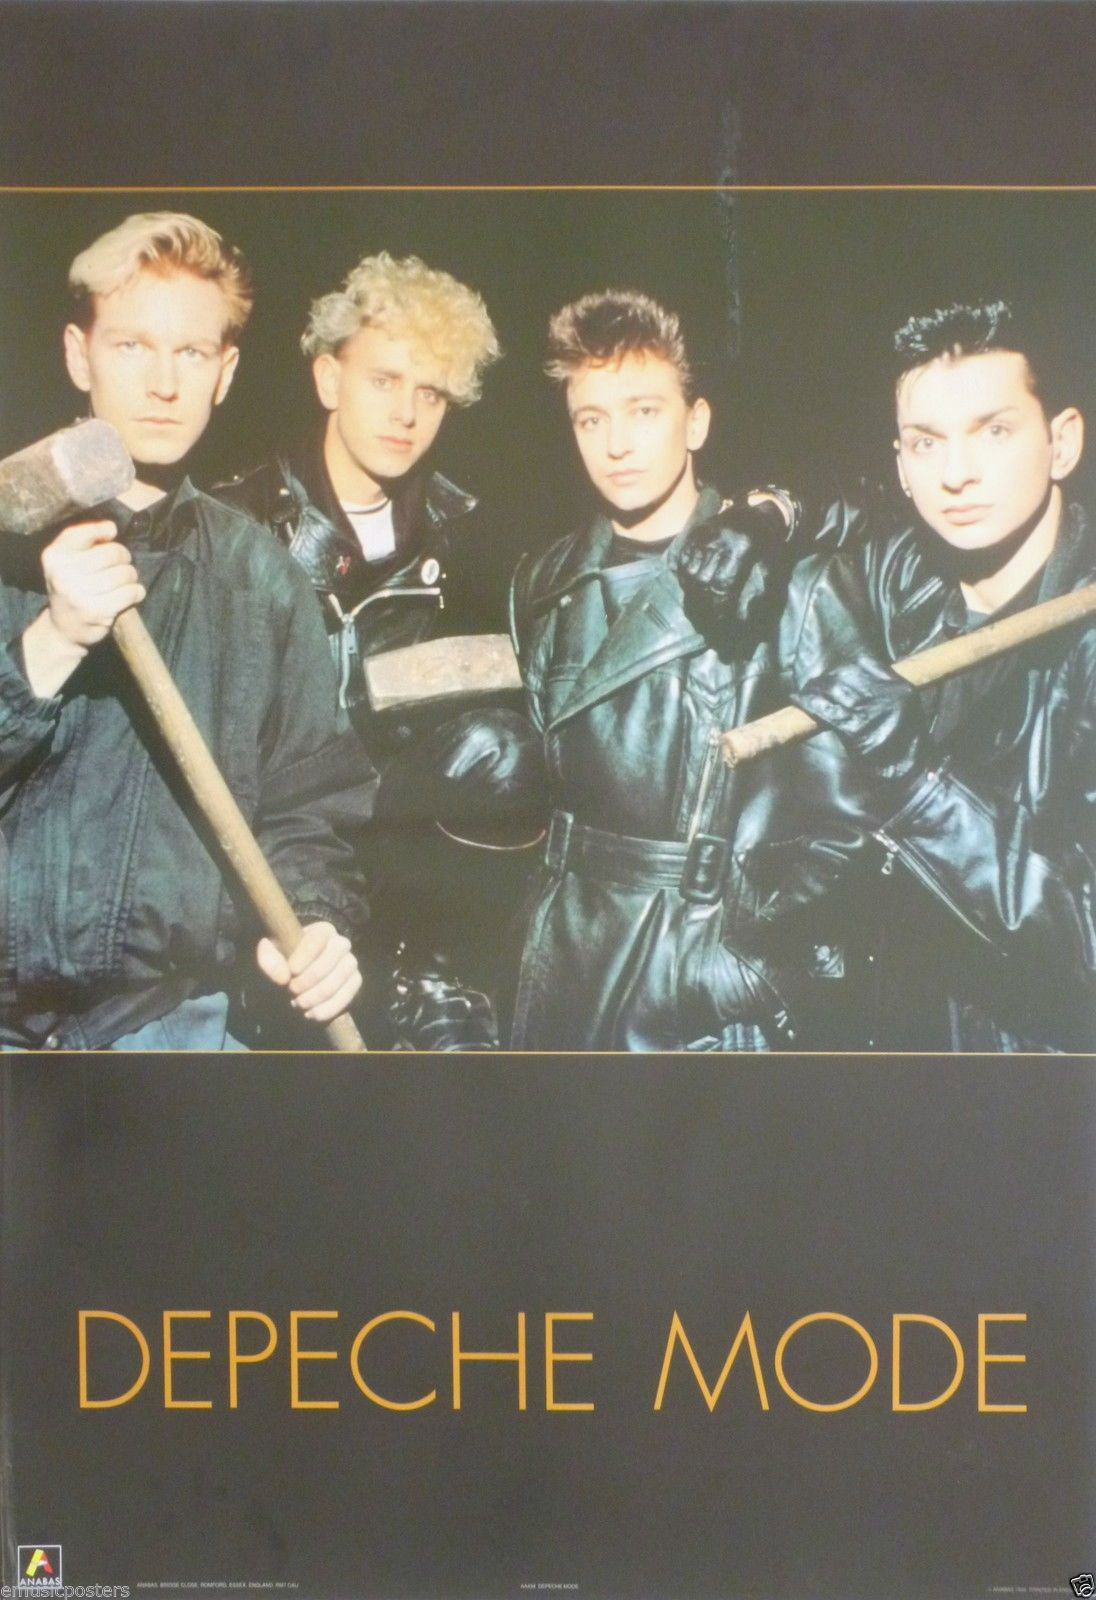 Depeche Mode https://www.facebook.com/FromTheWaybackMachine